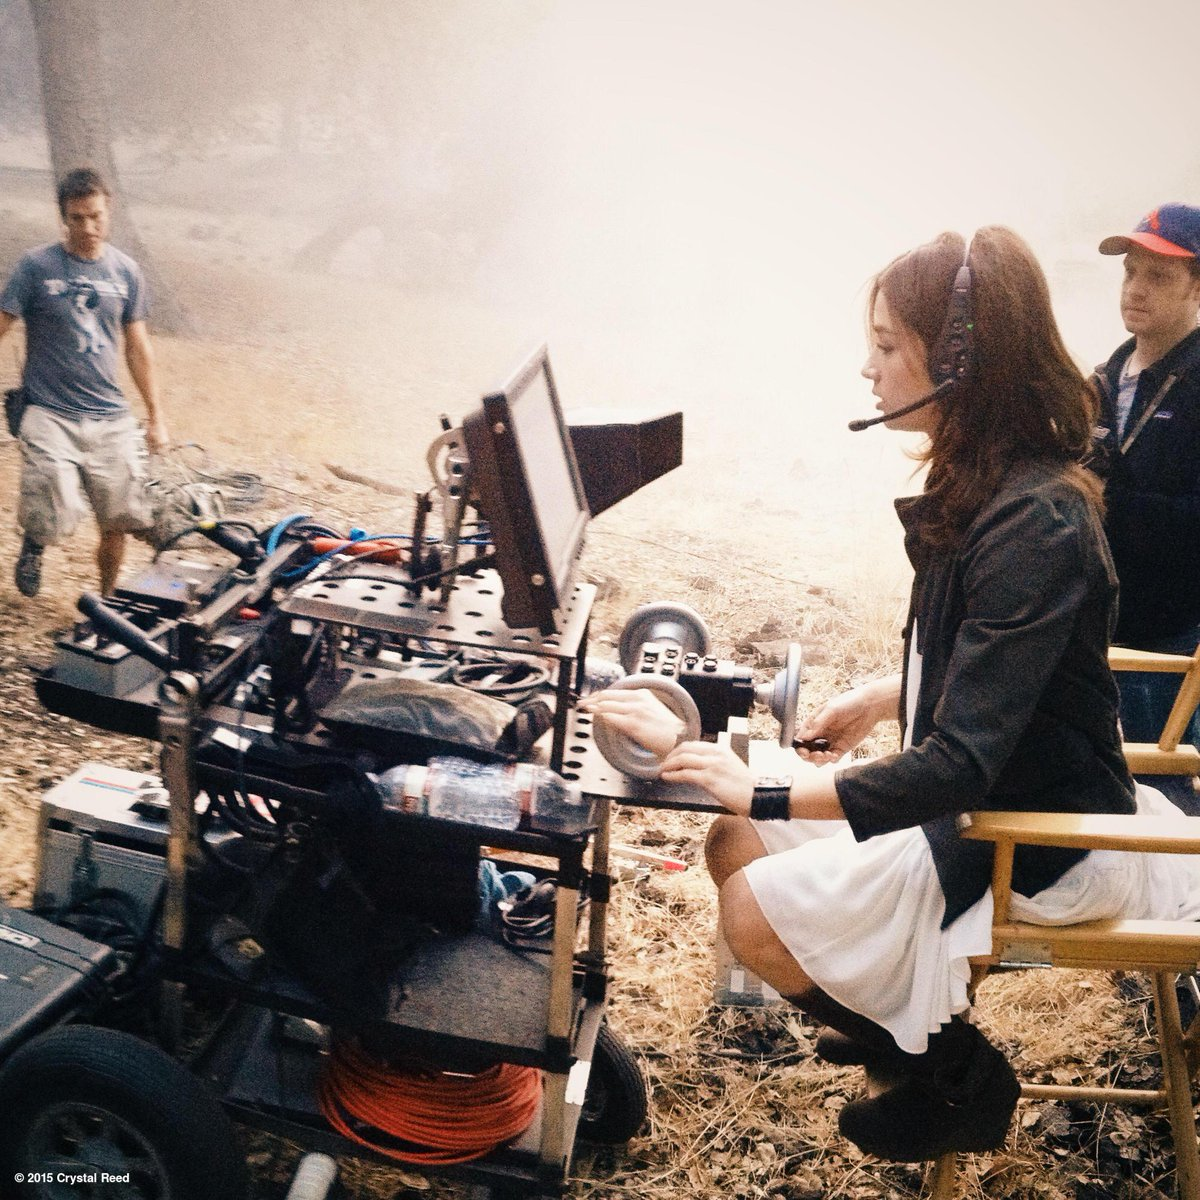 Much more comfortable behind the camera. I miss you guys! #tbt #TeenWolf http://t.co/4kVFCFCqmE